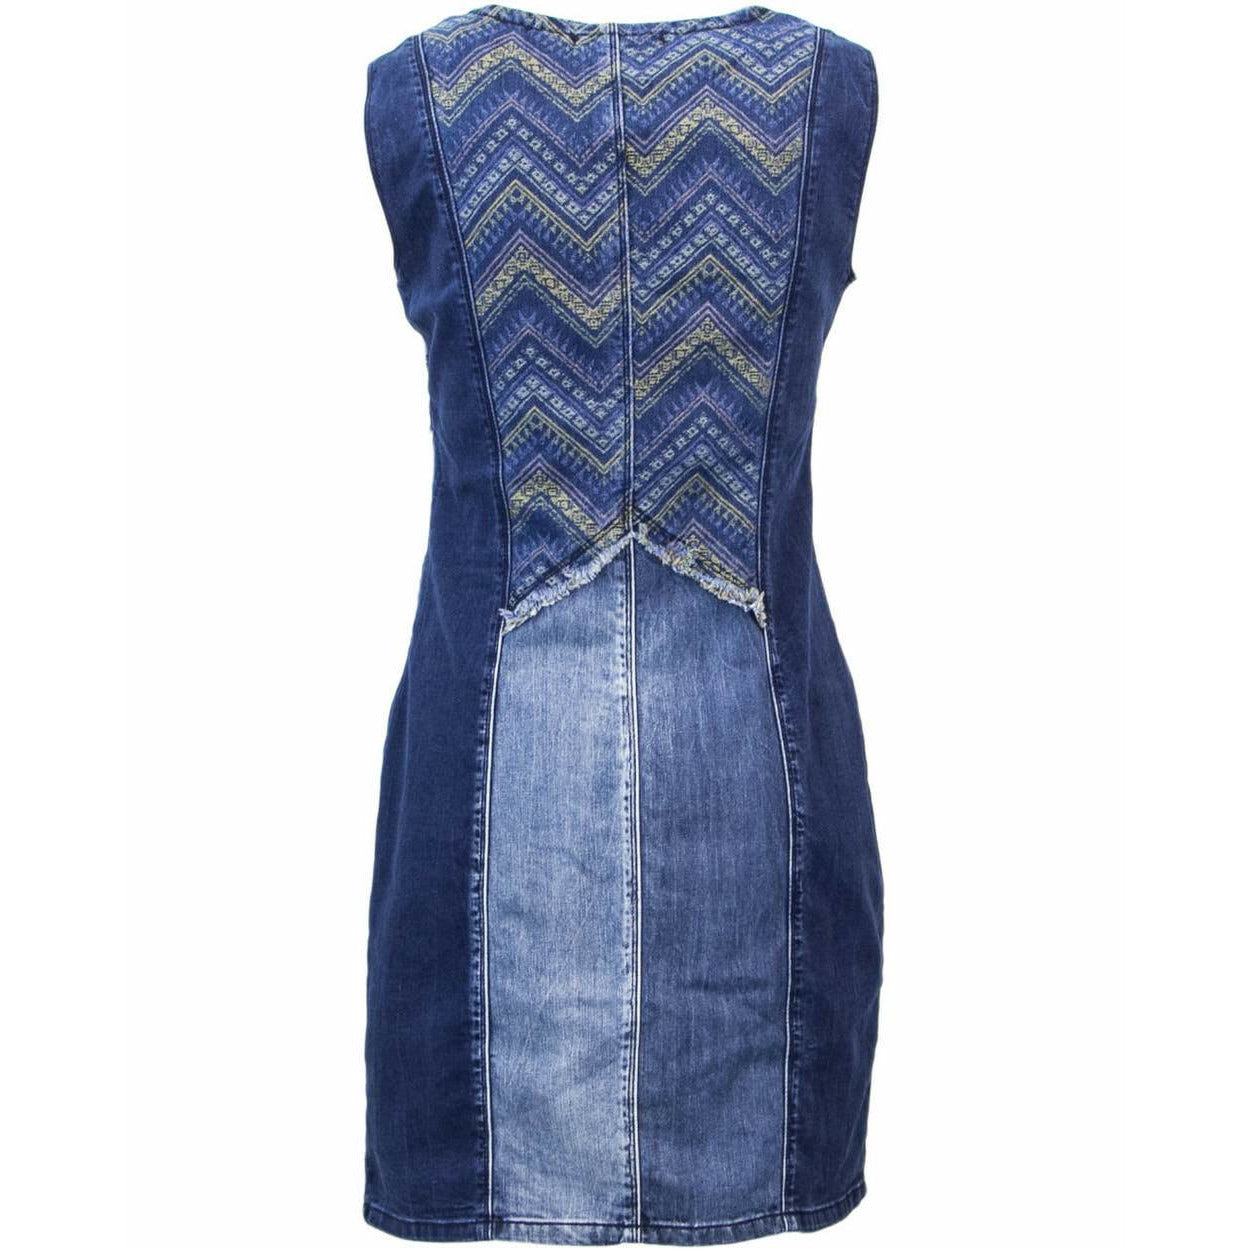 Desigual Denim Dress